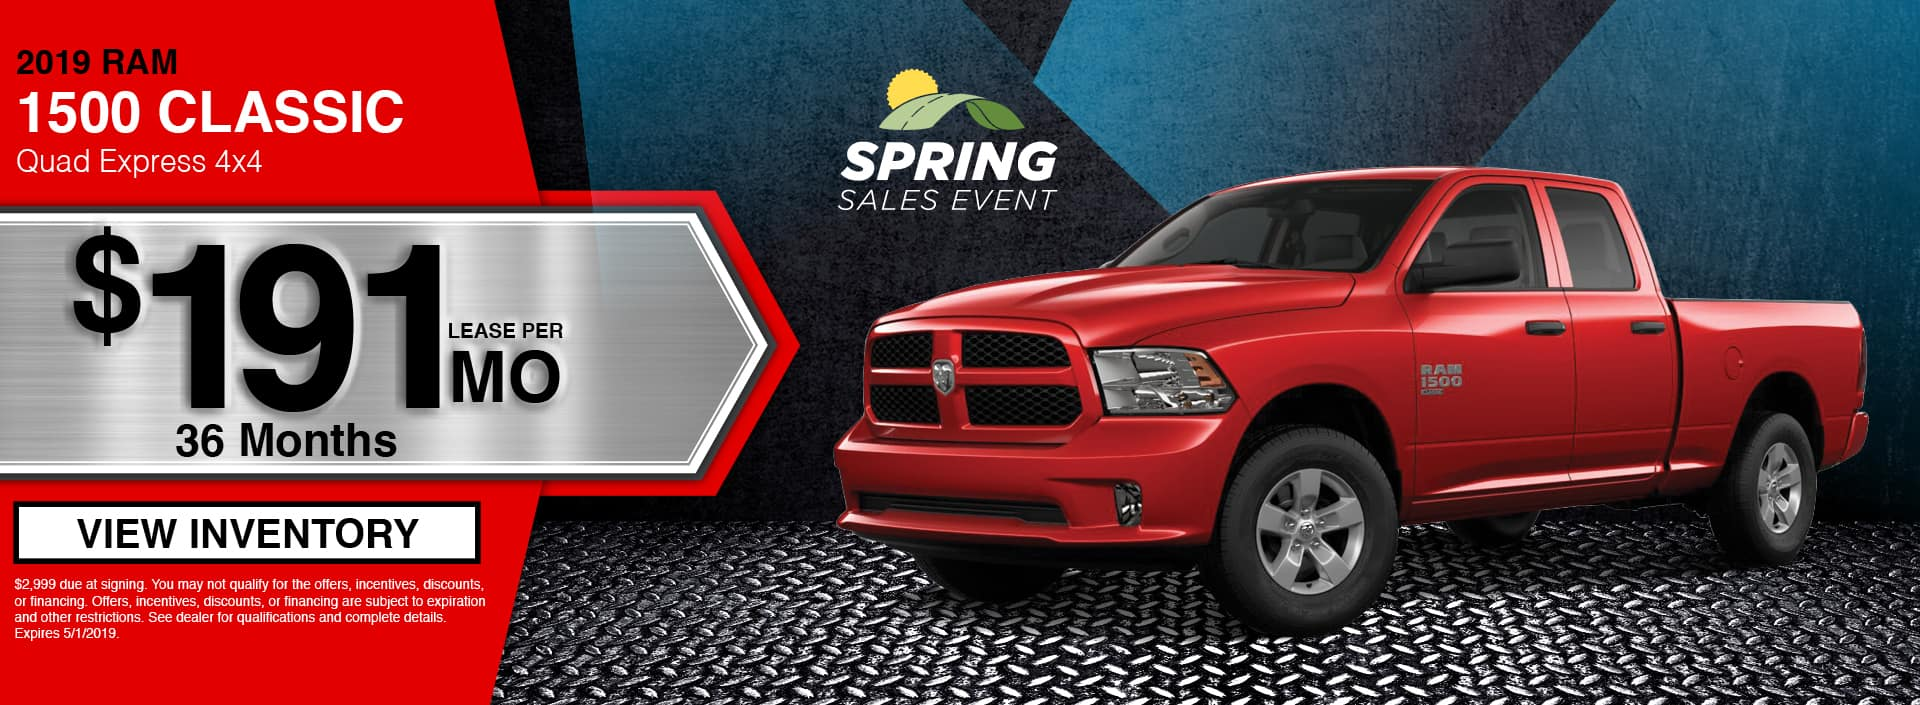 New 2019 RAM 1500 for Sale in Waseca, MN